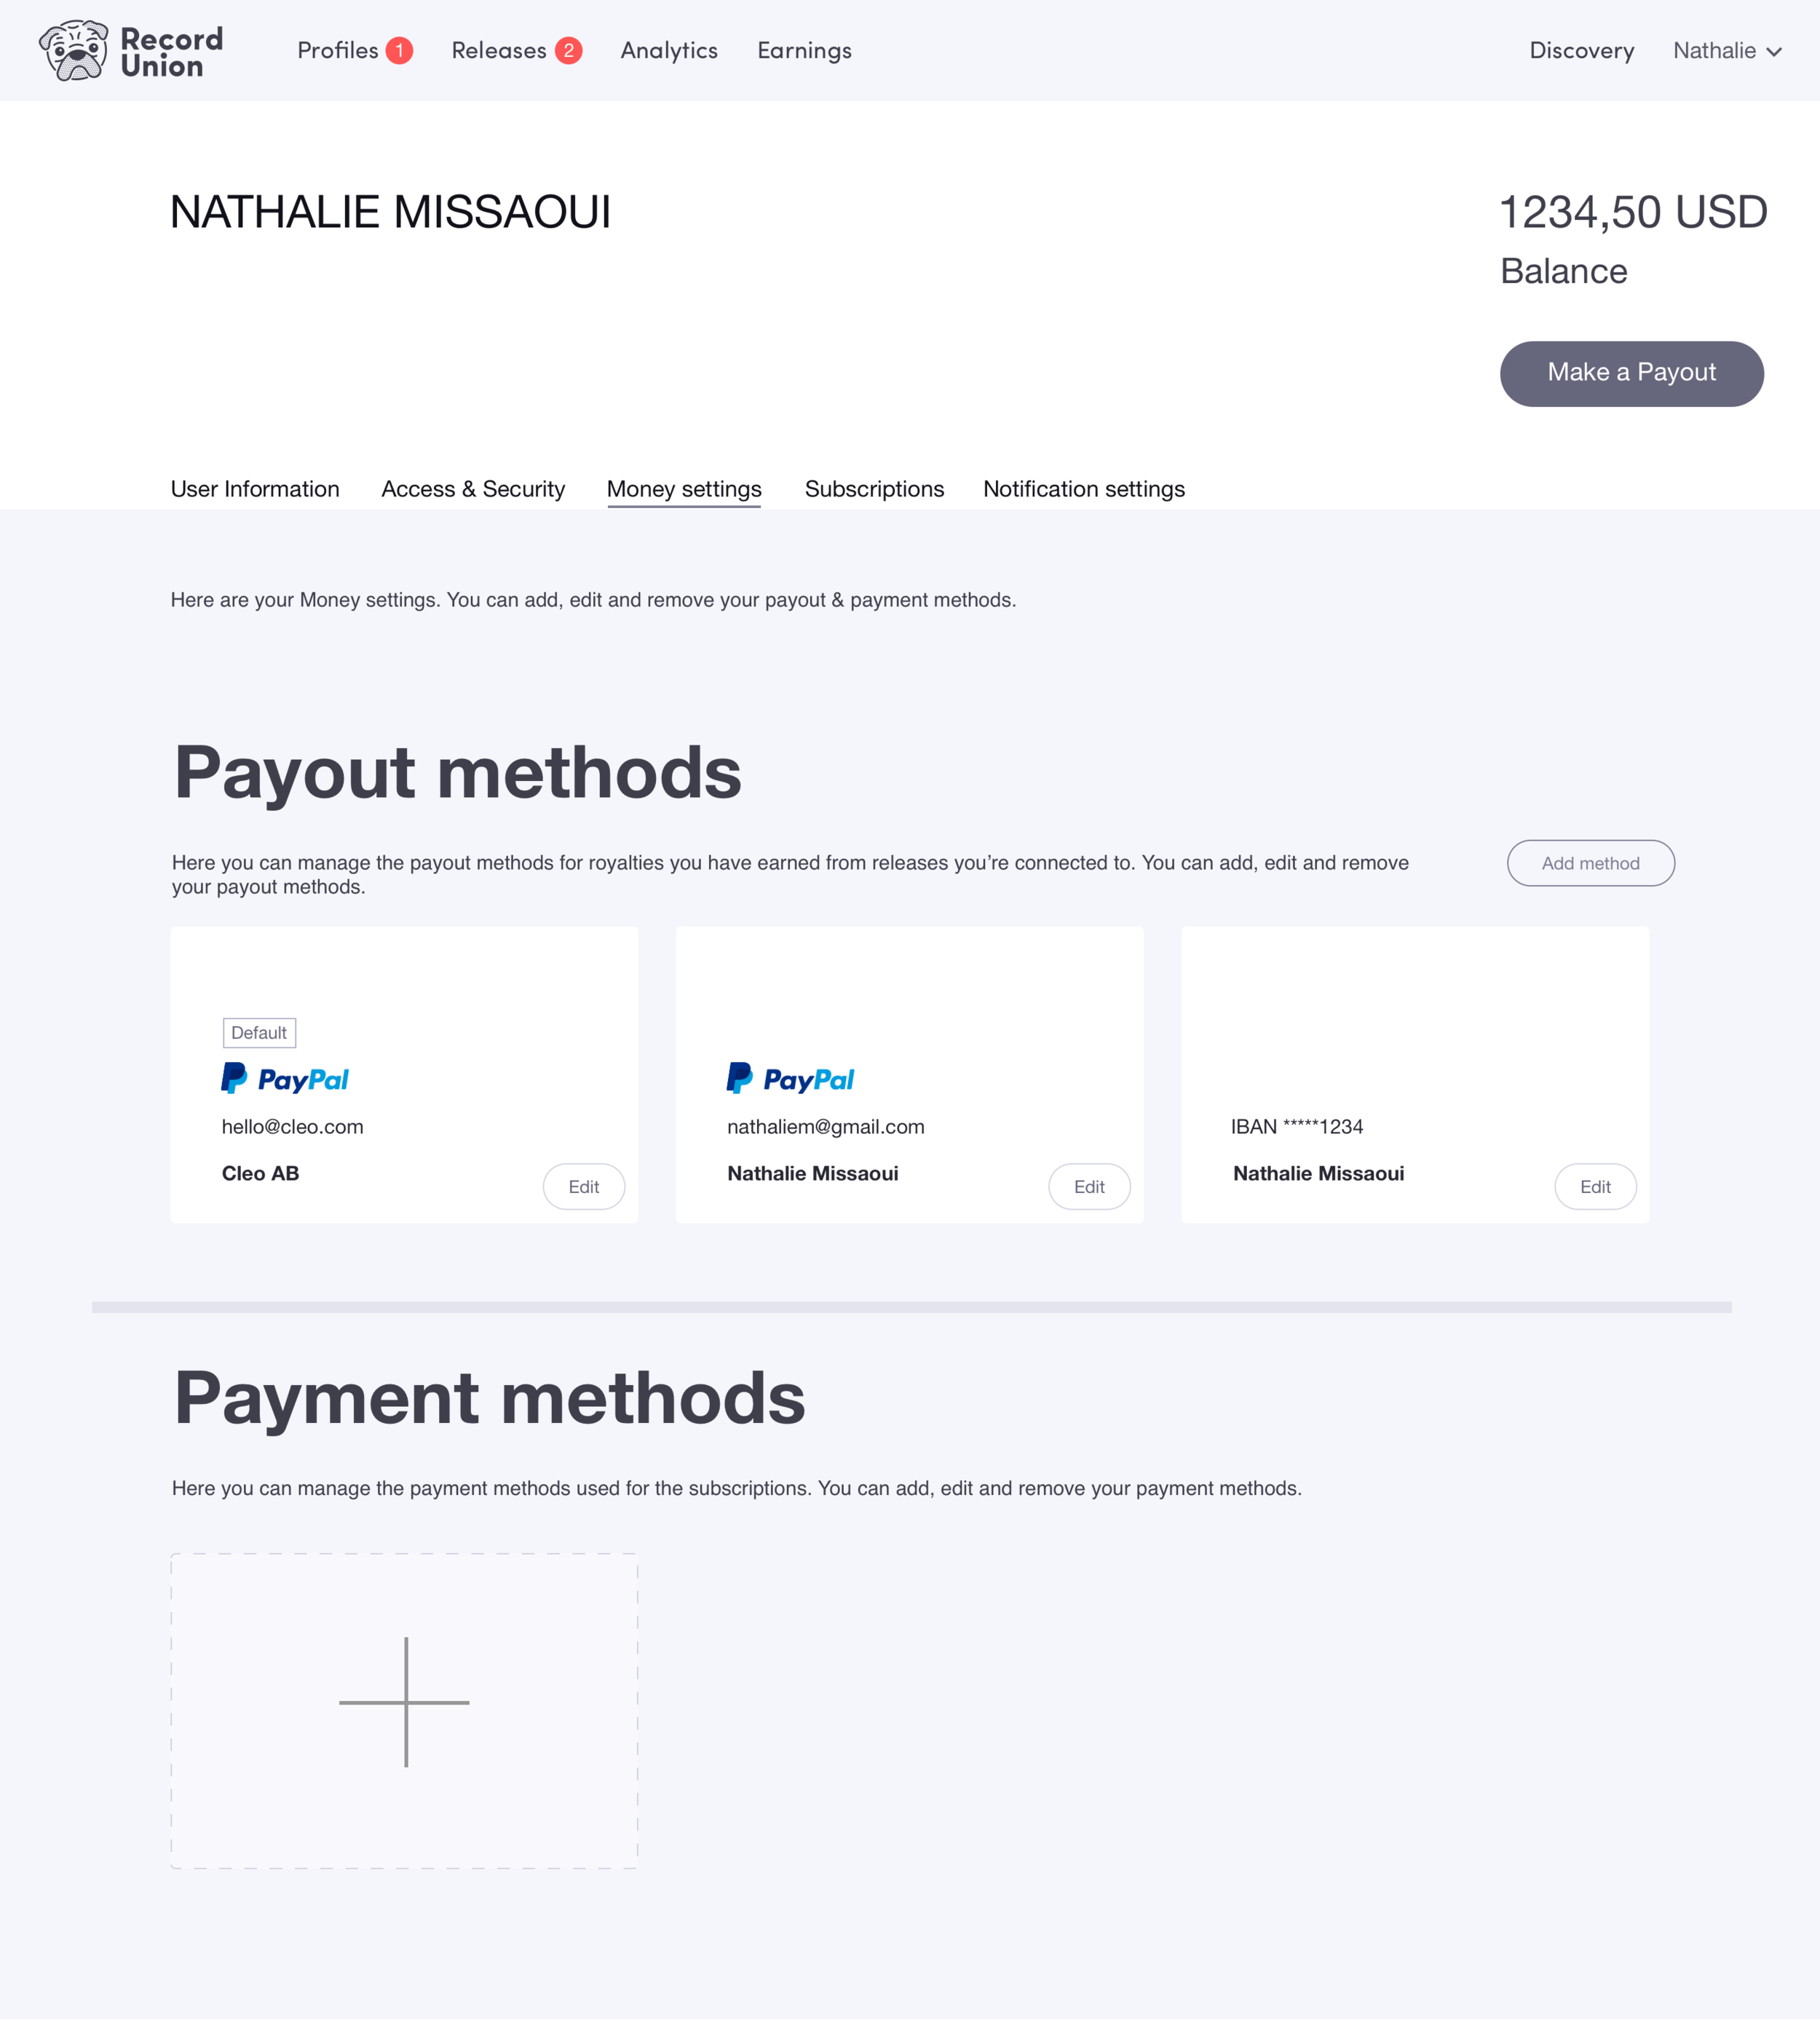 Click the image to open InVision prototype for user journey: Add Payout Method.